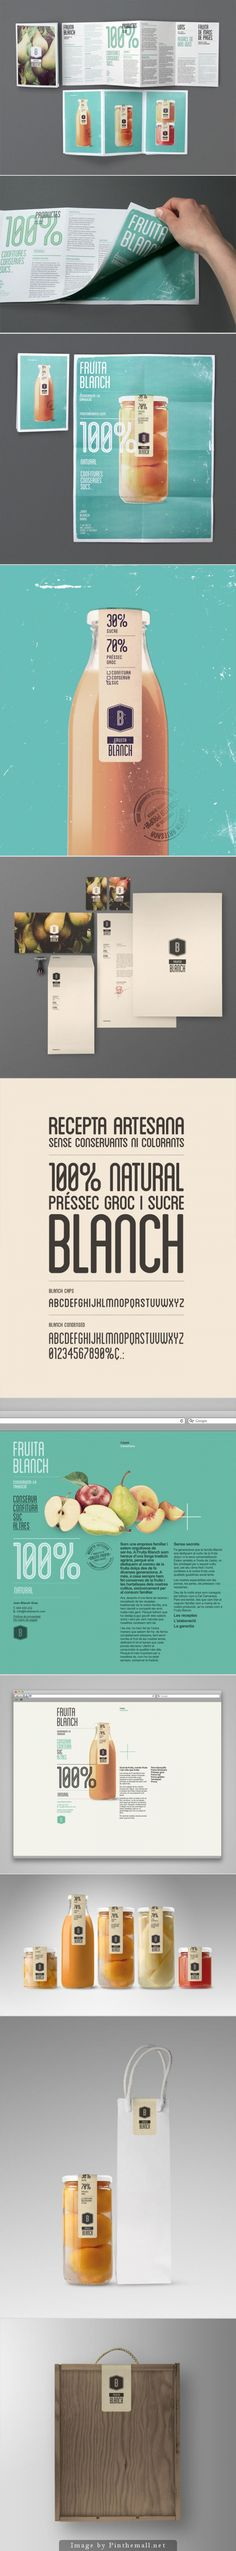 Fruita Blanch | Contributed by Eduard Duch of Barcelona | Product label based design studio Atipus. - created via http://pinthemall.net